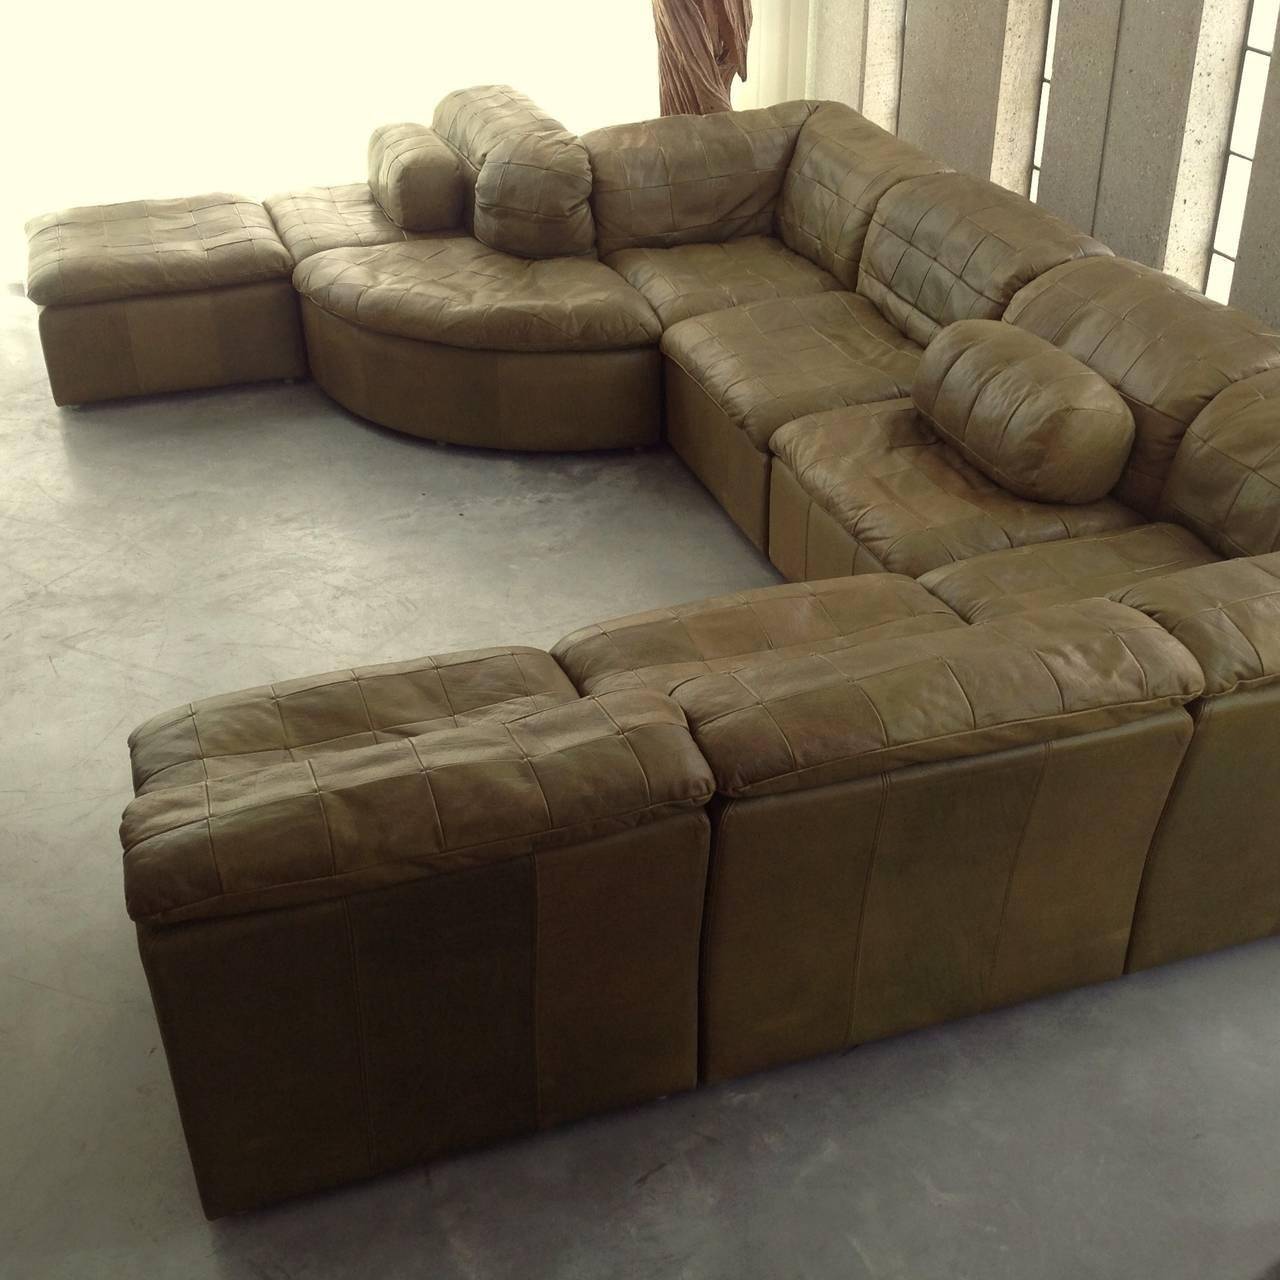 Green Leather Sectional Sofa 57 With Green Leather Sectional Sofa Intended For Green Leather Sectional Sofas (View 5 of 20)